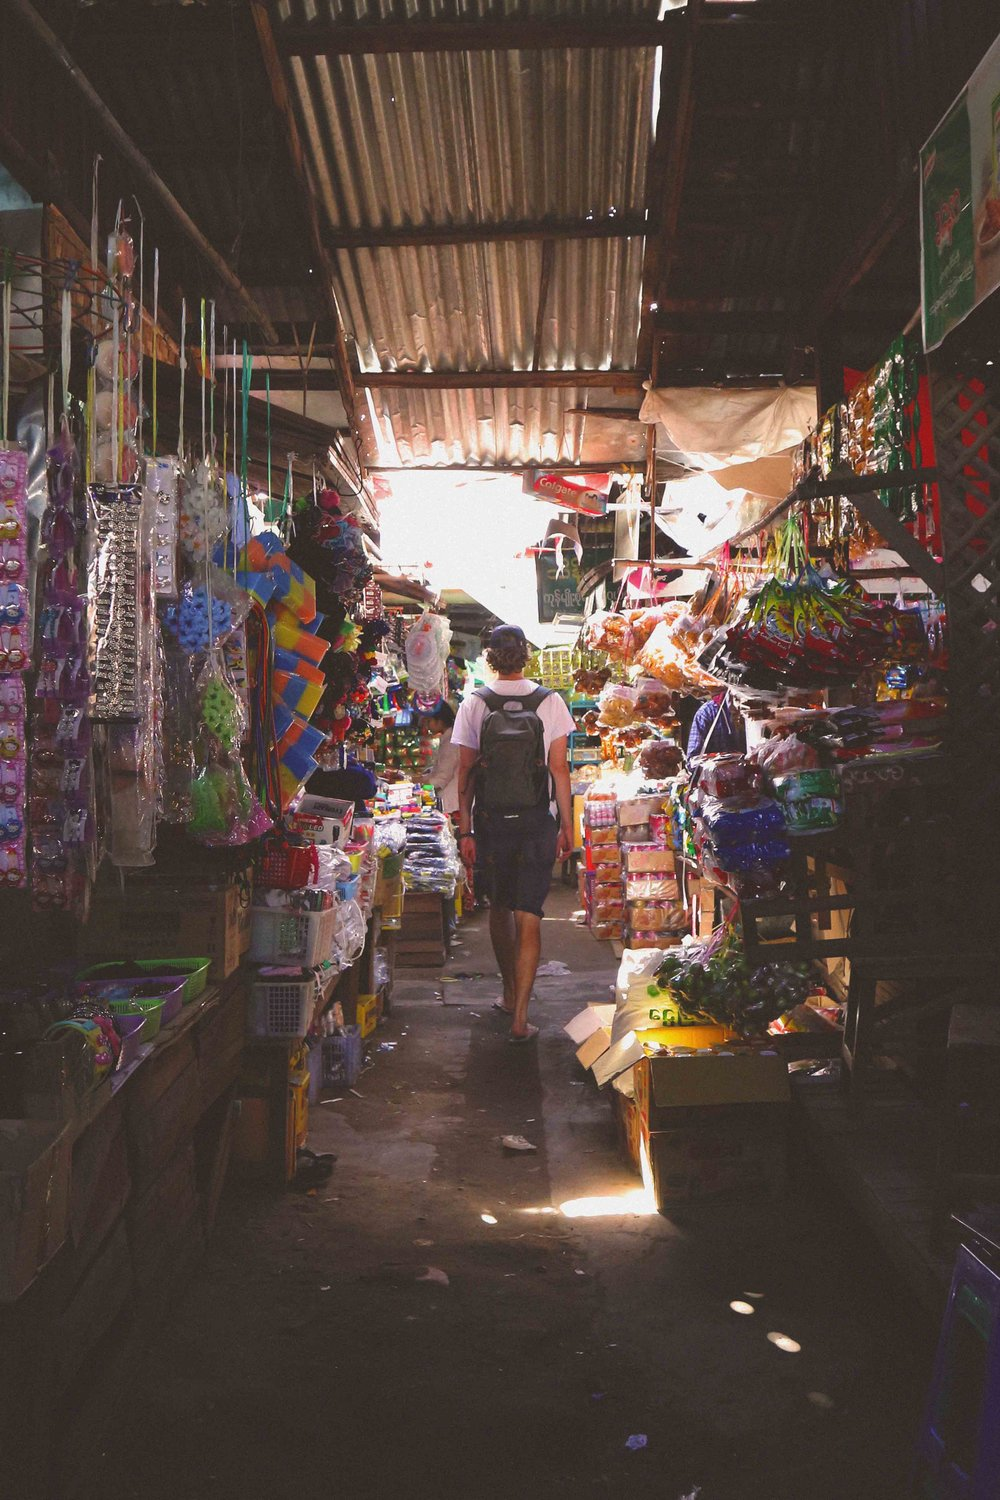 Getting lost in the market